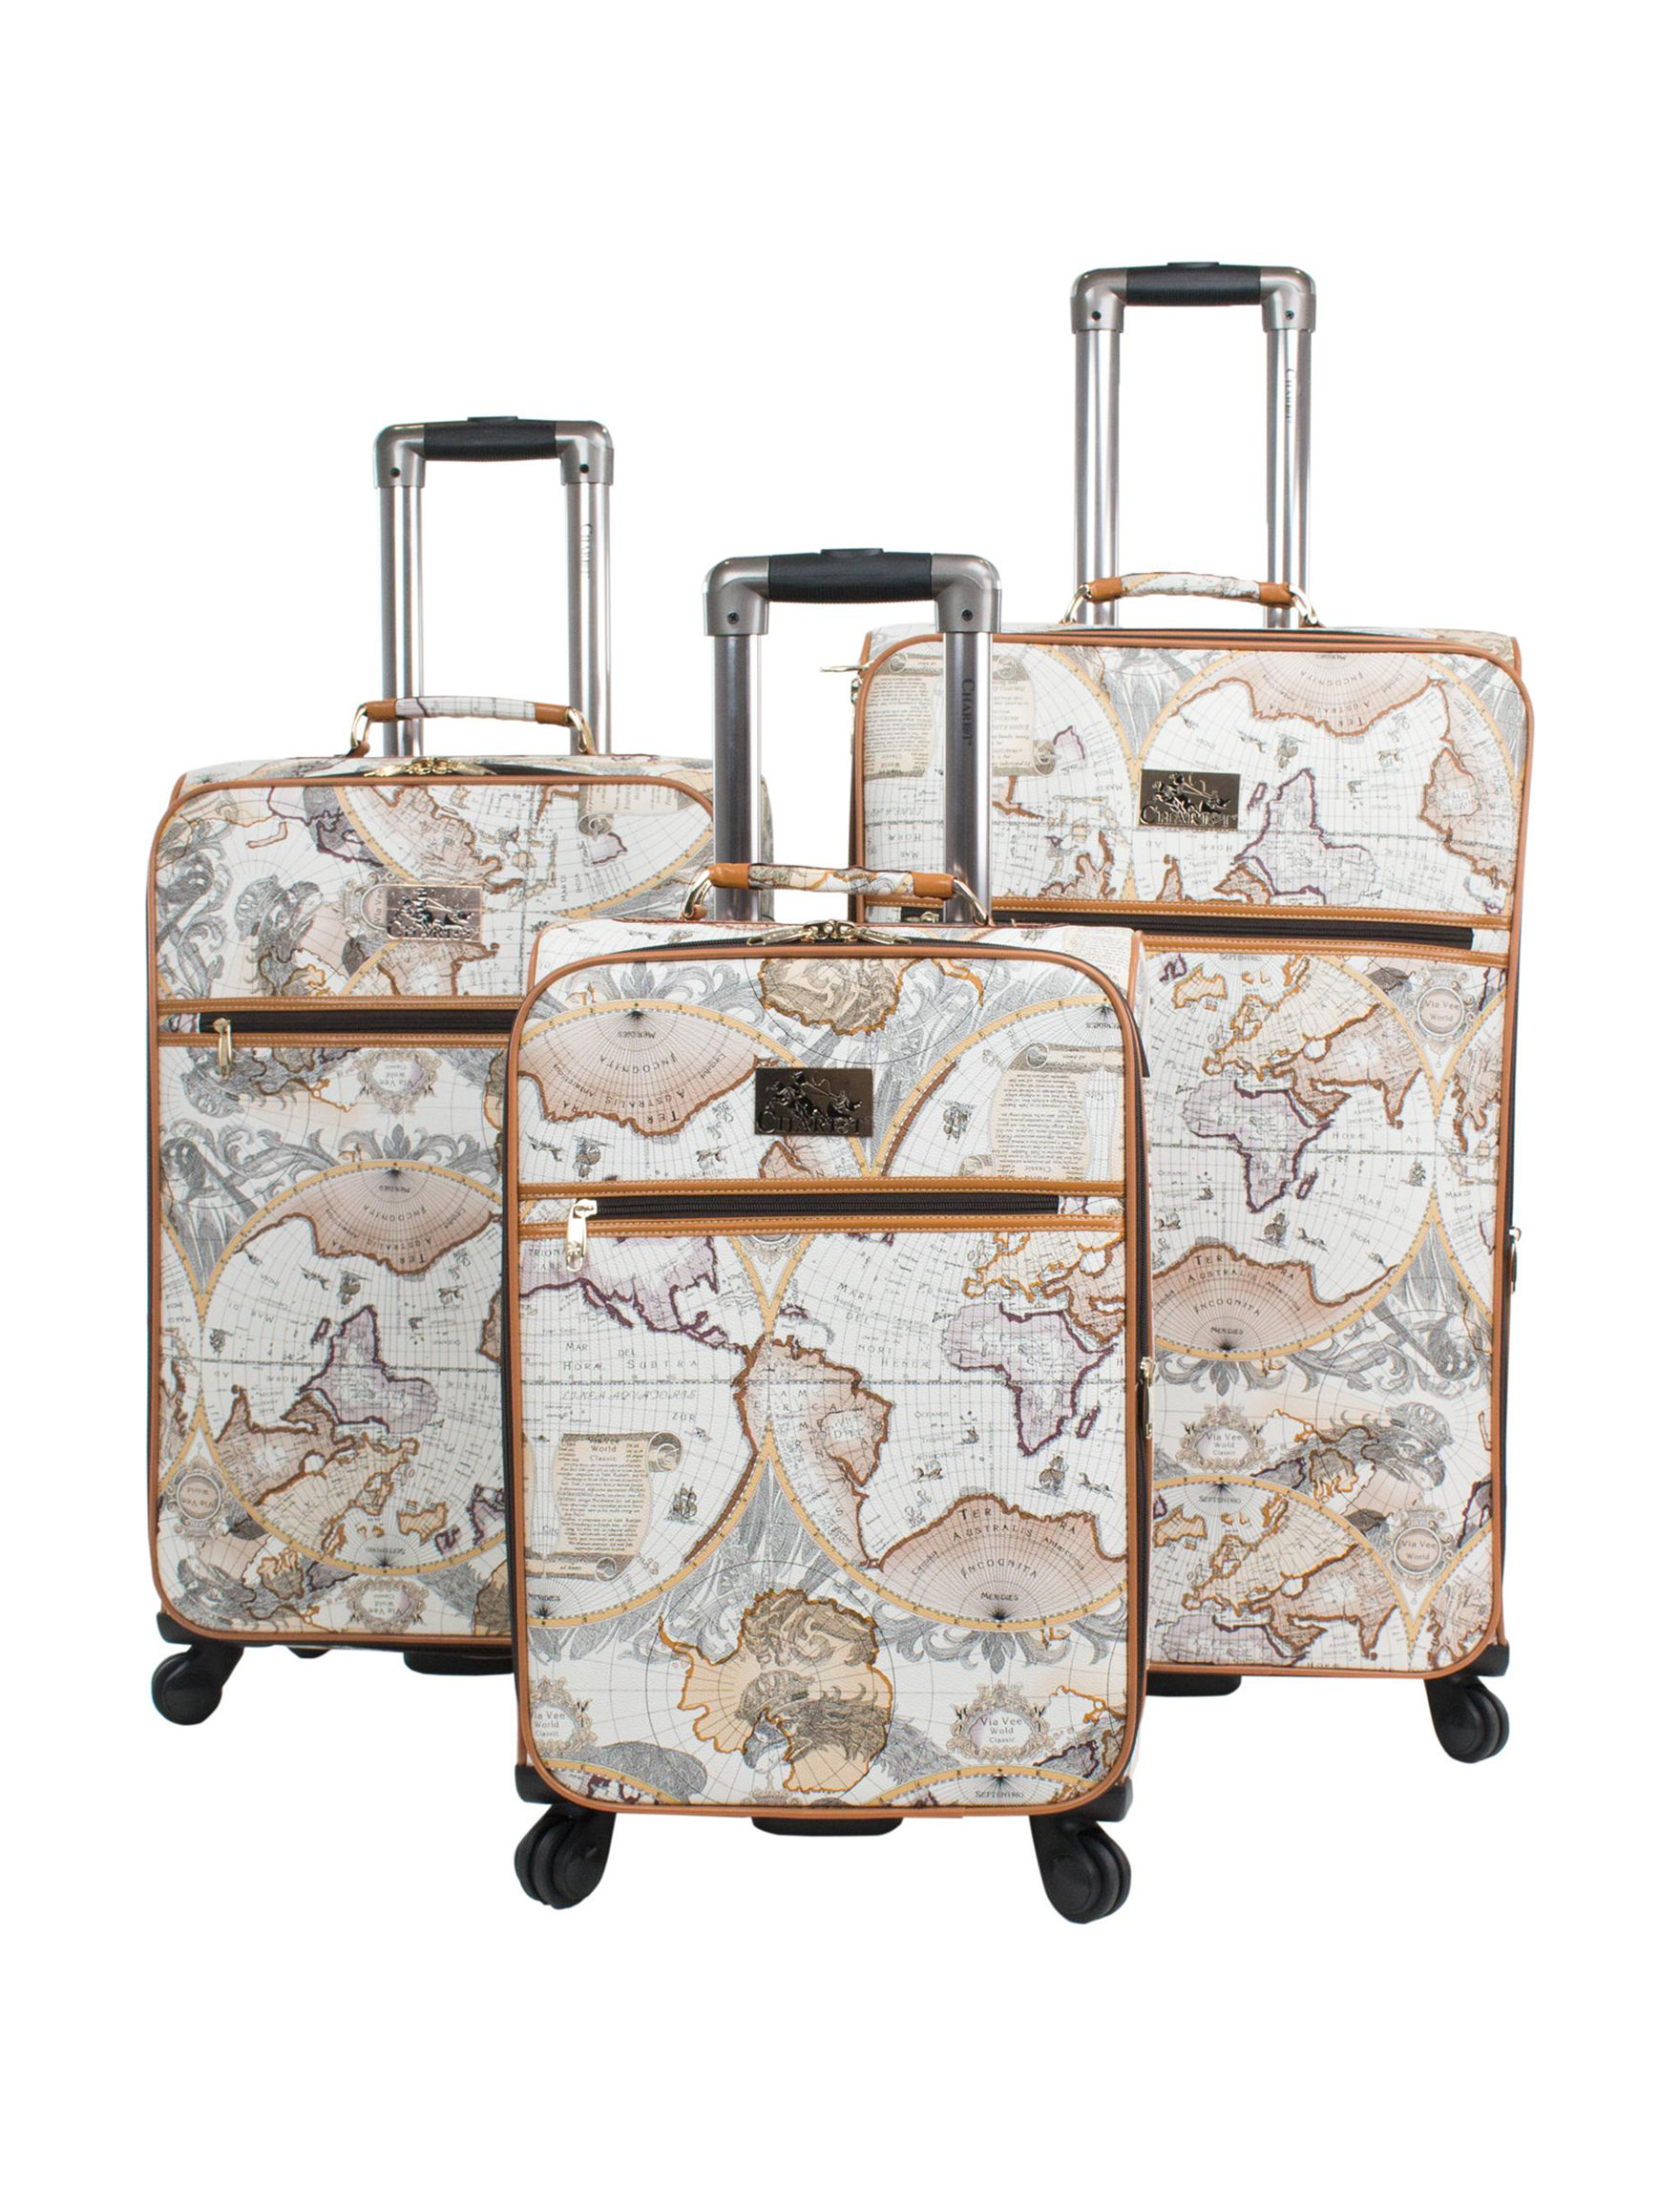 Chariot Travelware Brown / White Upright Spinners